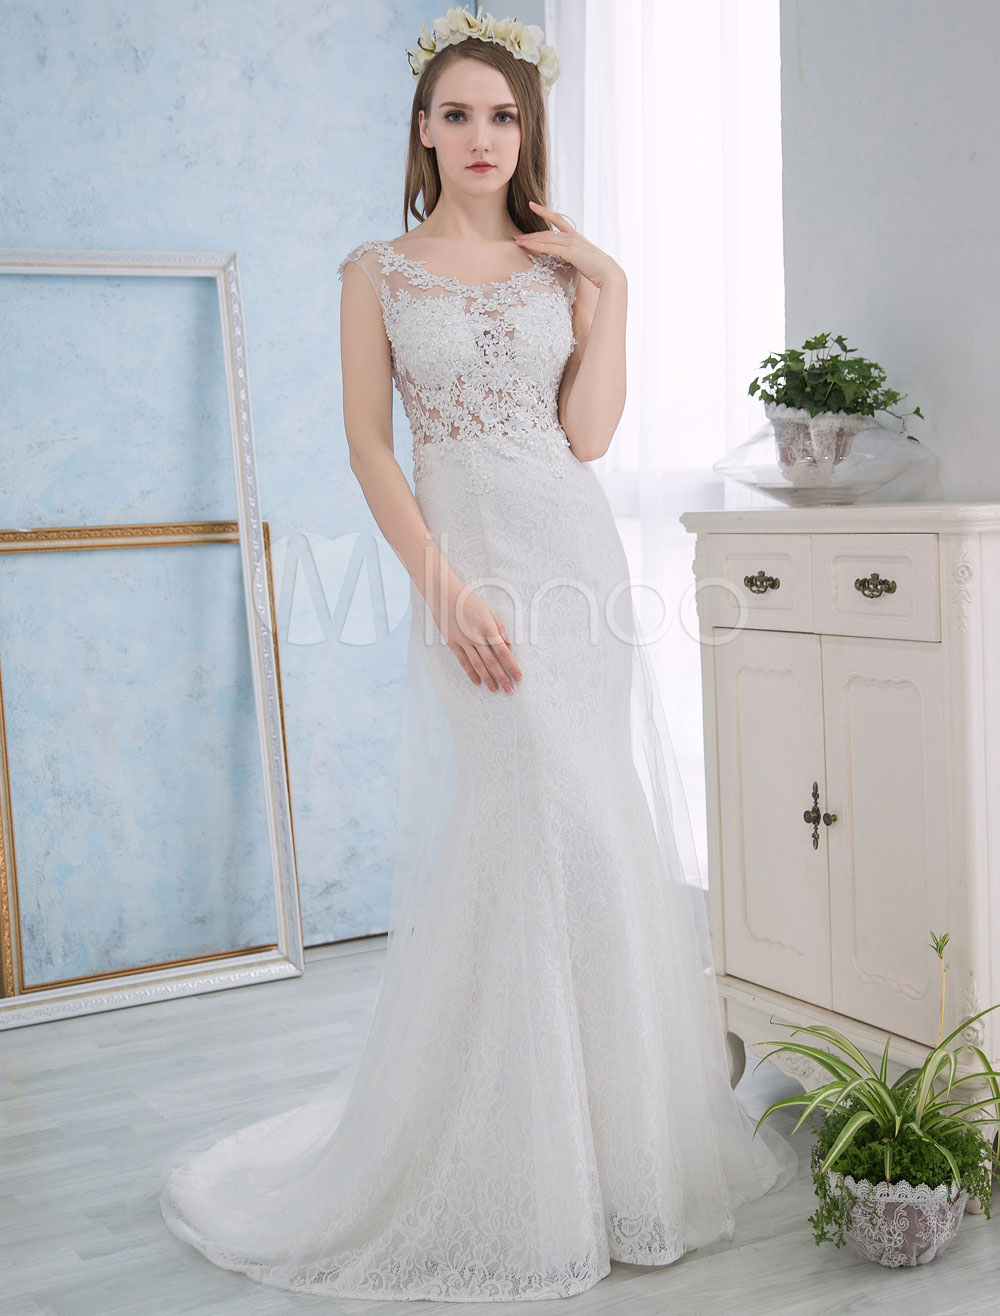 Buy Ivory Wedding Dresses Mermaid Lace Beach Summer Bridal Dress Beading Sleeveless Open Back Wedding Gown With Train for $153.99 in Milanoo store